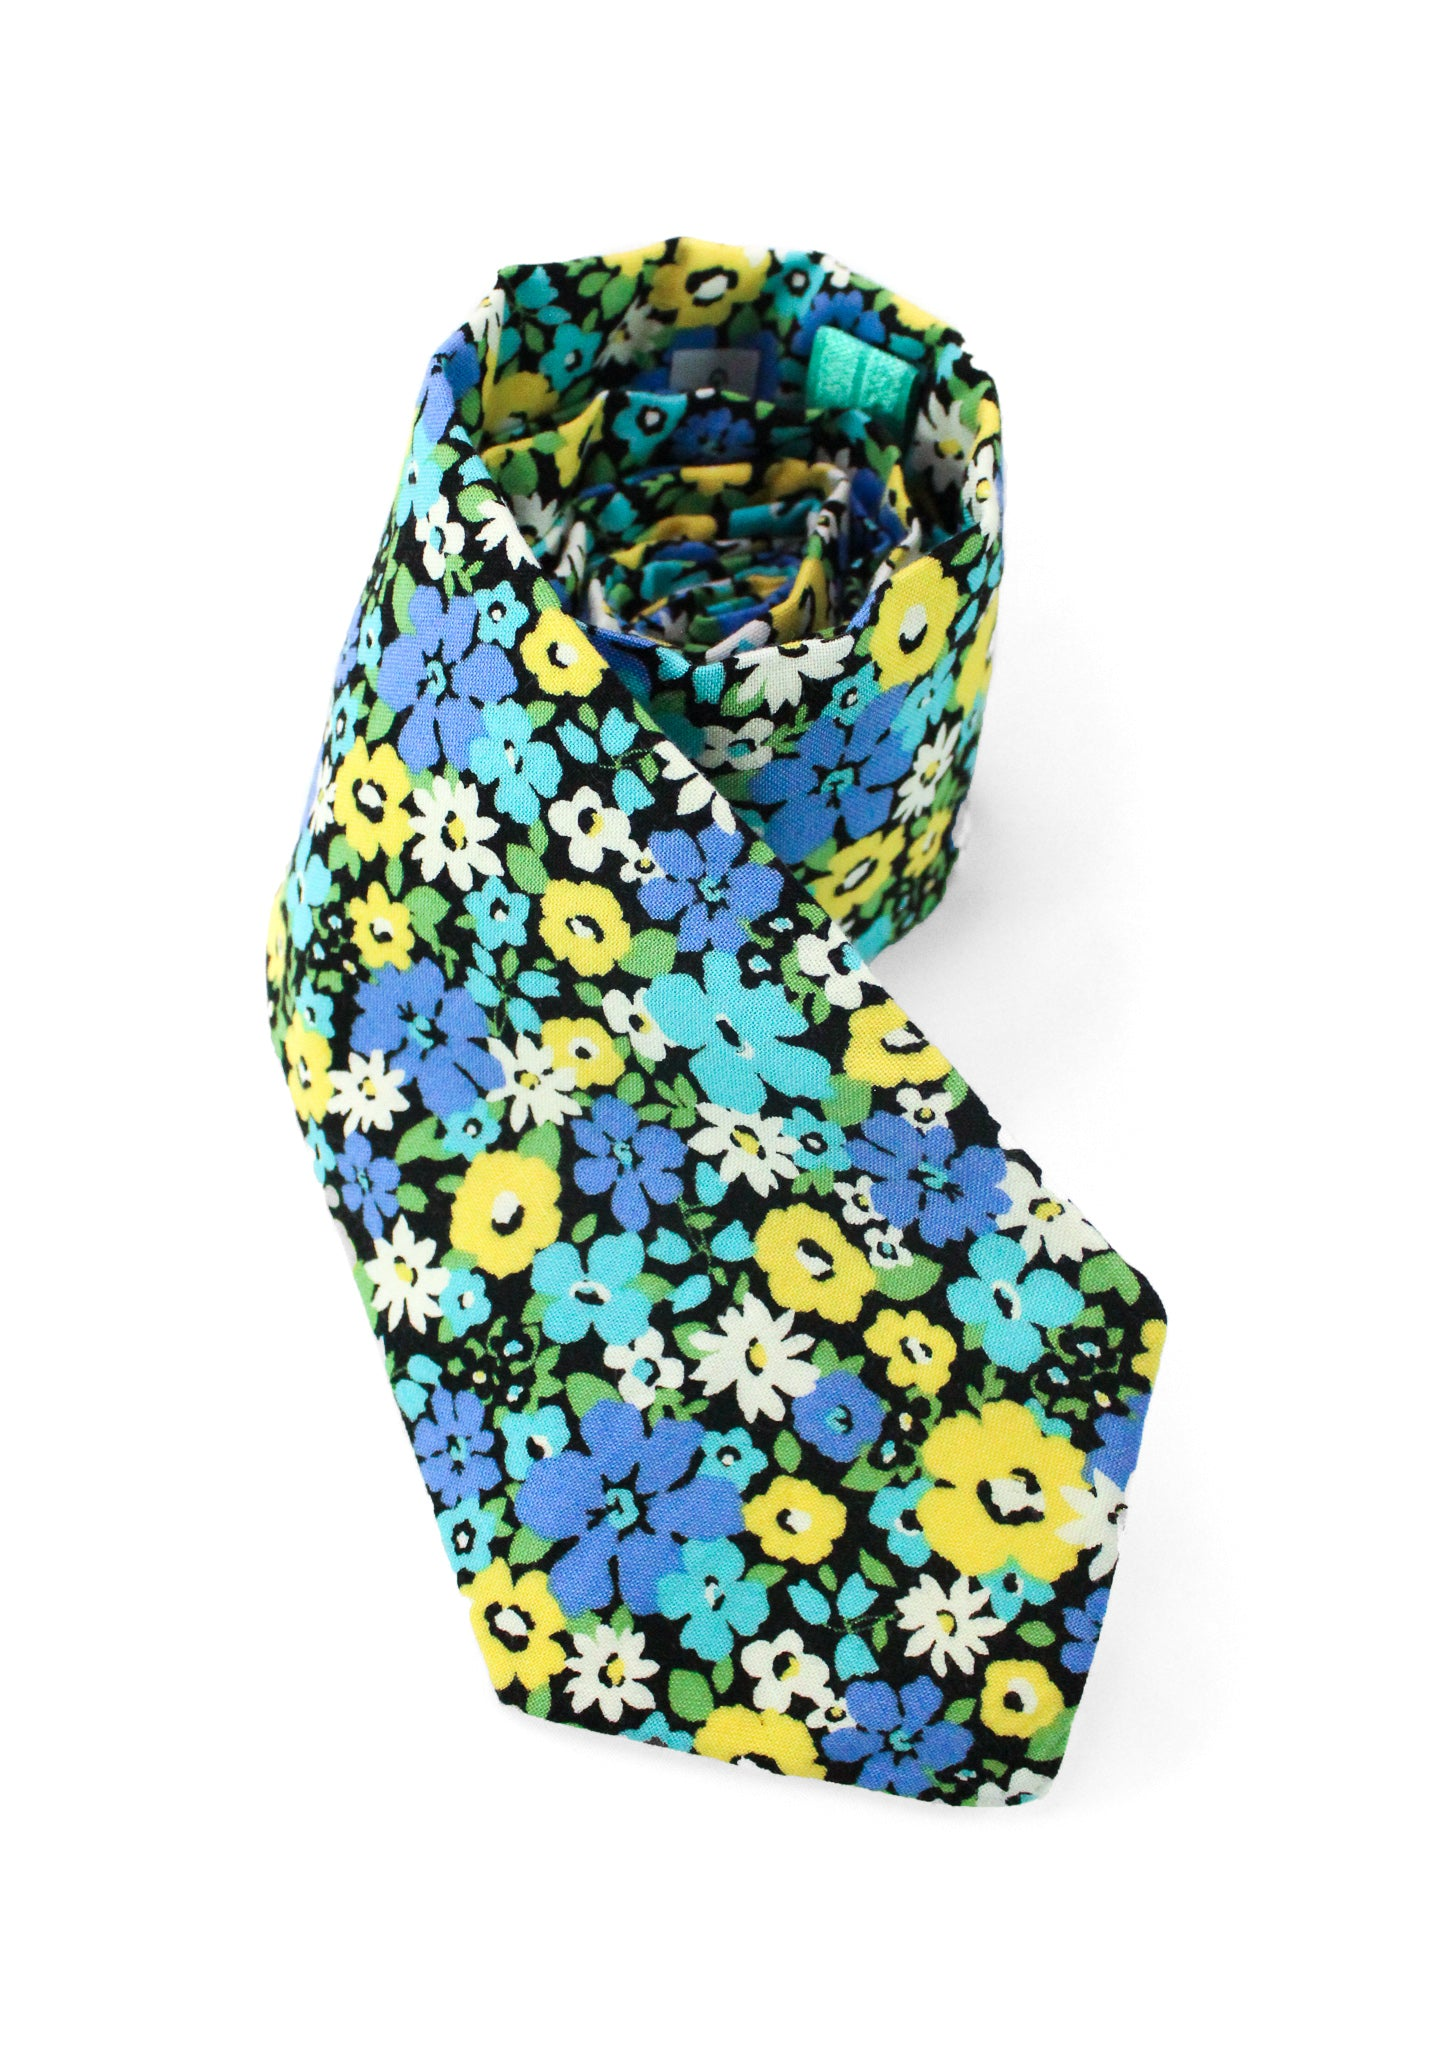 tie blue yellow flowers floral turquoise necktie www.GroovyTieSquad.com